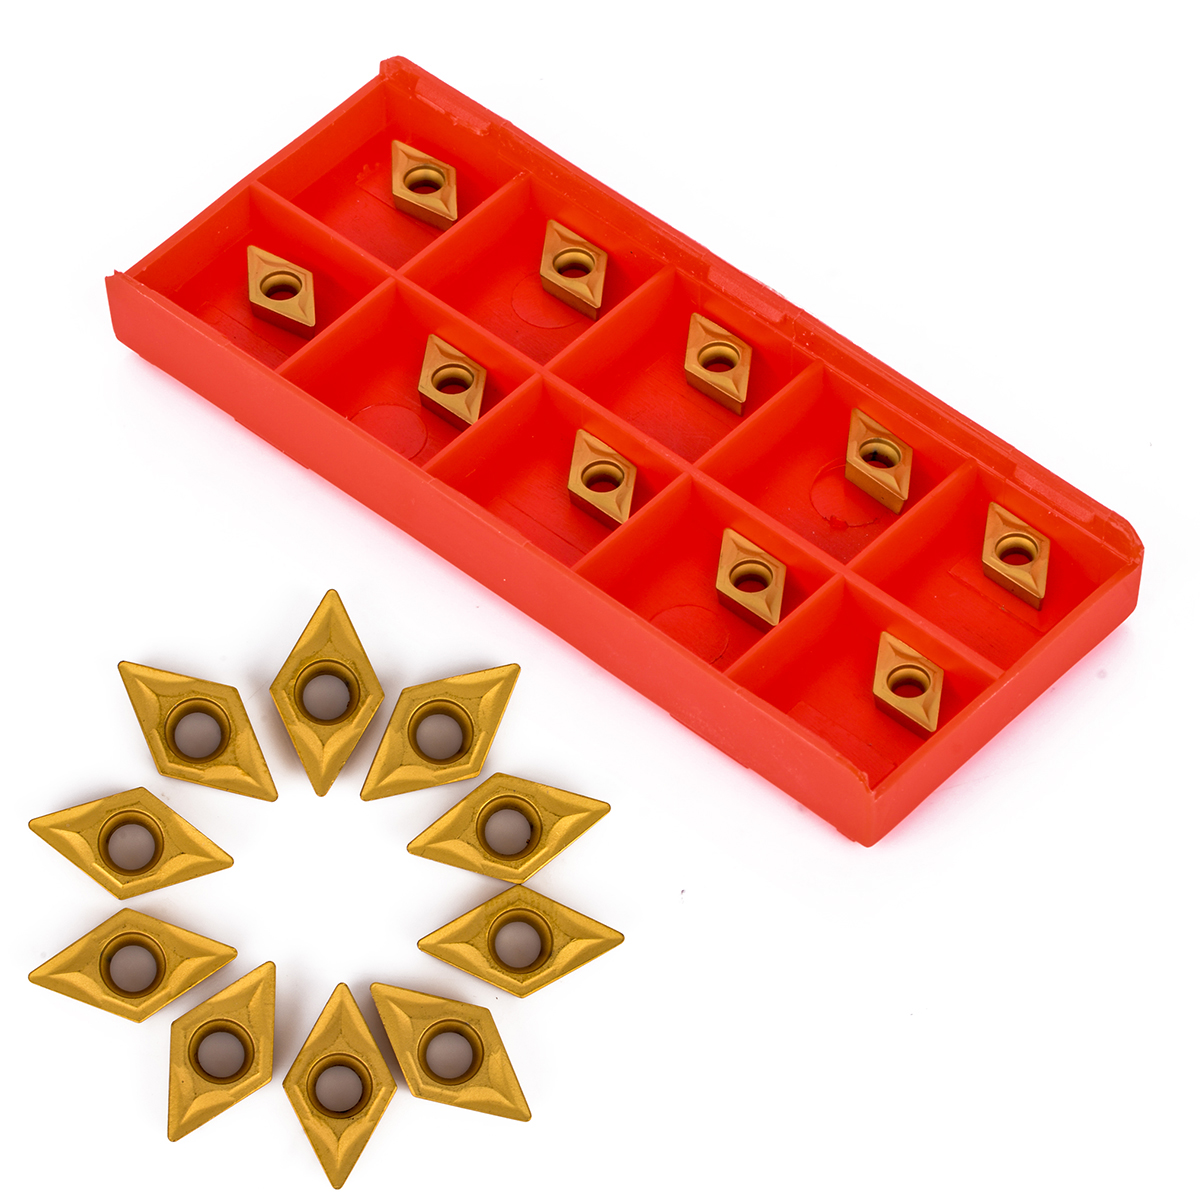 10pcs DCMT070204 YBC251 Carbide Inserts Set with Box Mayitr For Lathe Turning Tool Boring Bar 5pcs 1 2 indexable turning tool insert mayitr c6 chipbreaker carbide lathe tool bit set for boring chamfering with hex wrench